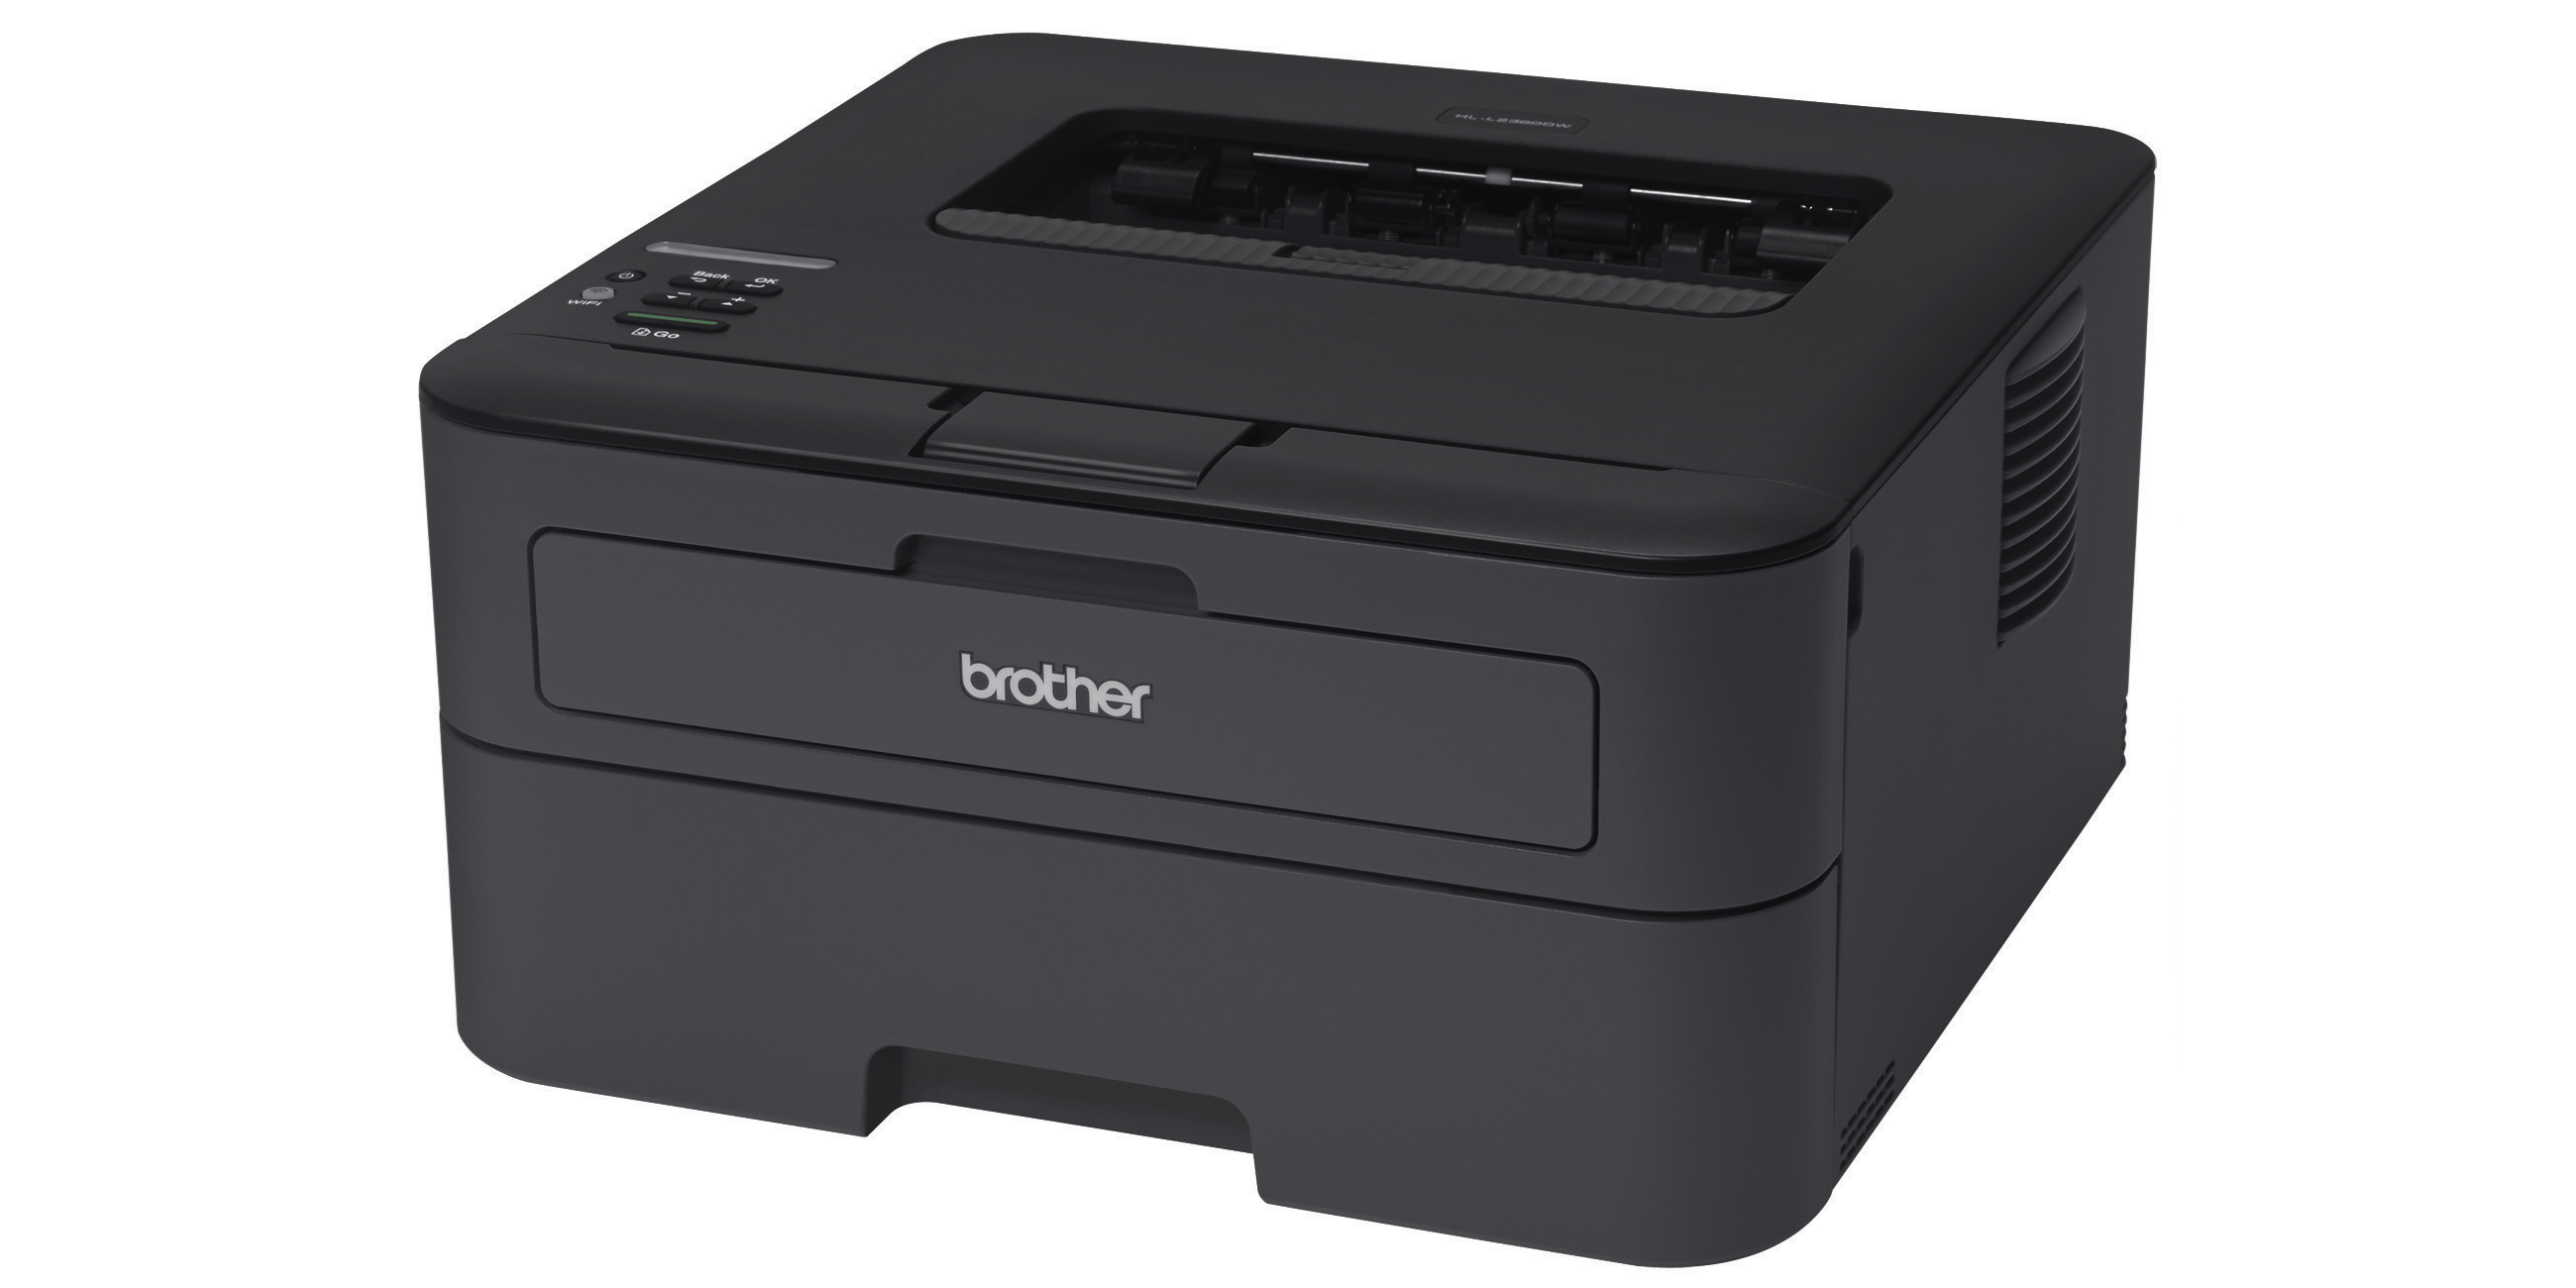 hl-l2360dw-brother-airprint-sale-03